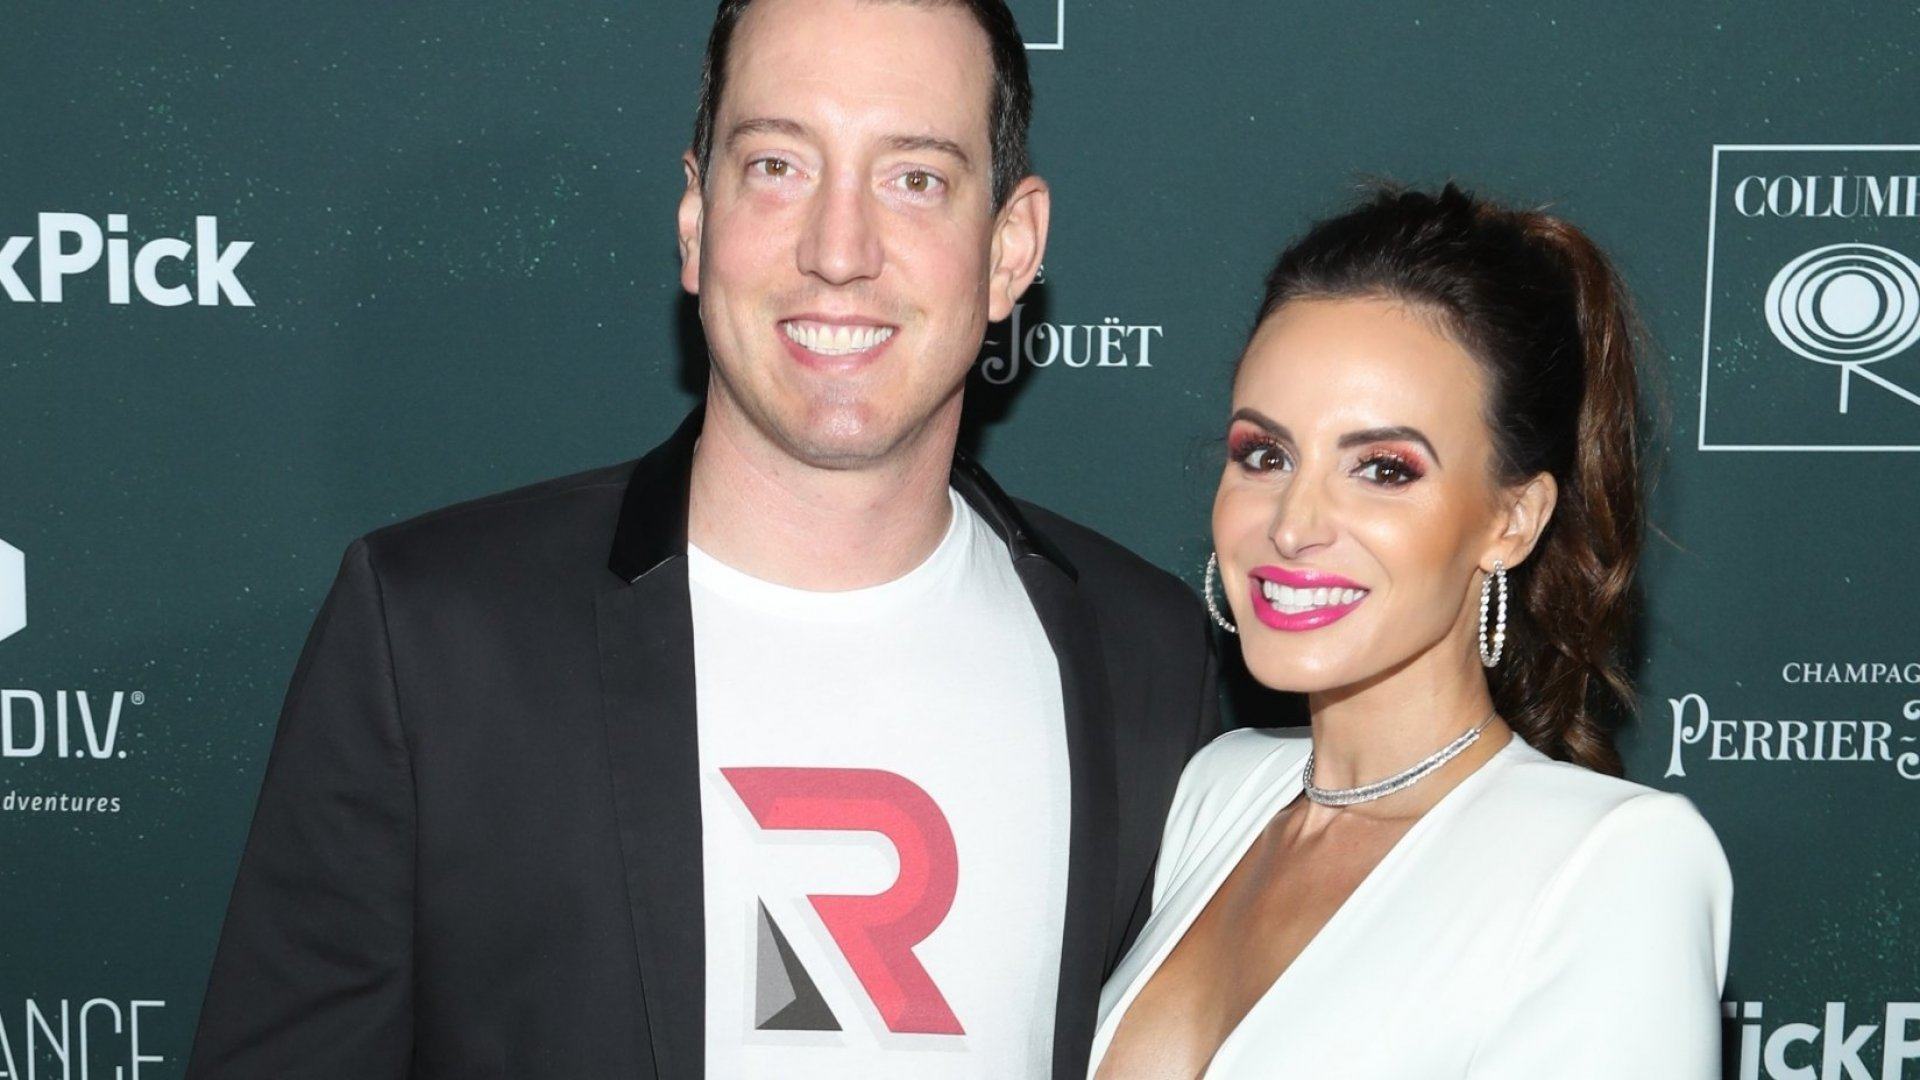 Nascar Champion Kyle Busch: 'The Most Meaningful Compliment I've Ever Received'